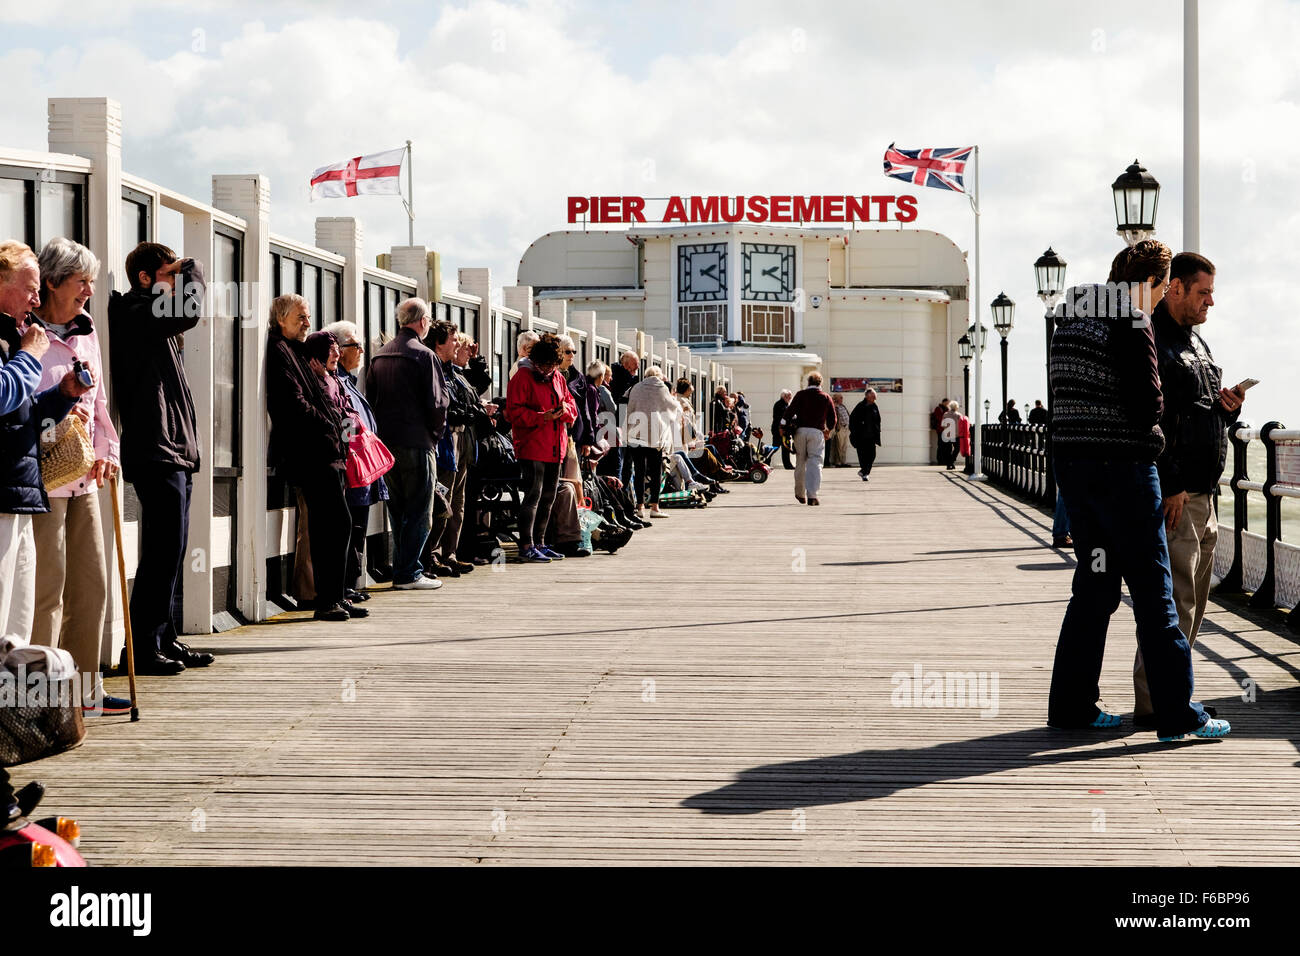 Battle of Britain: Historic flypast for 75th anniversary at Worthing, UK, 15/09/2015 :  People wait on Worthing - Stock Image